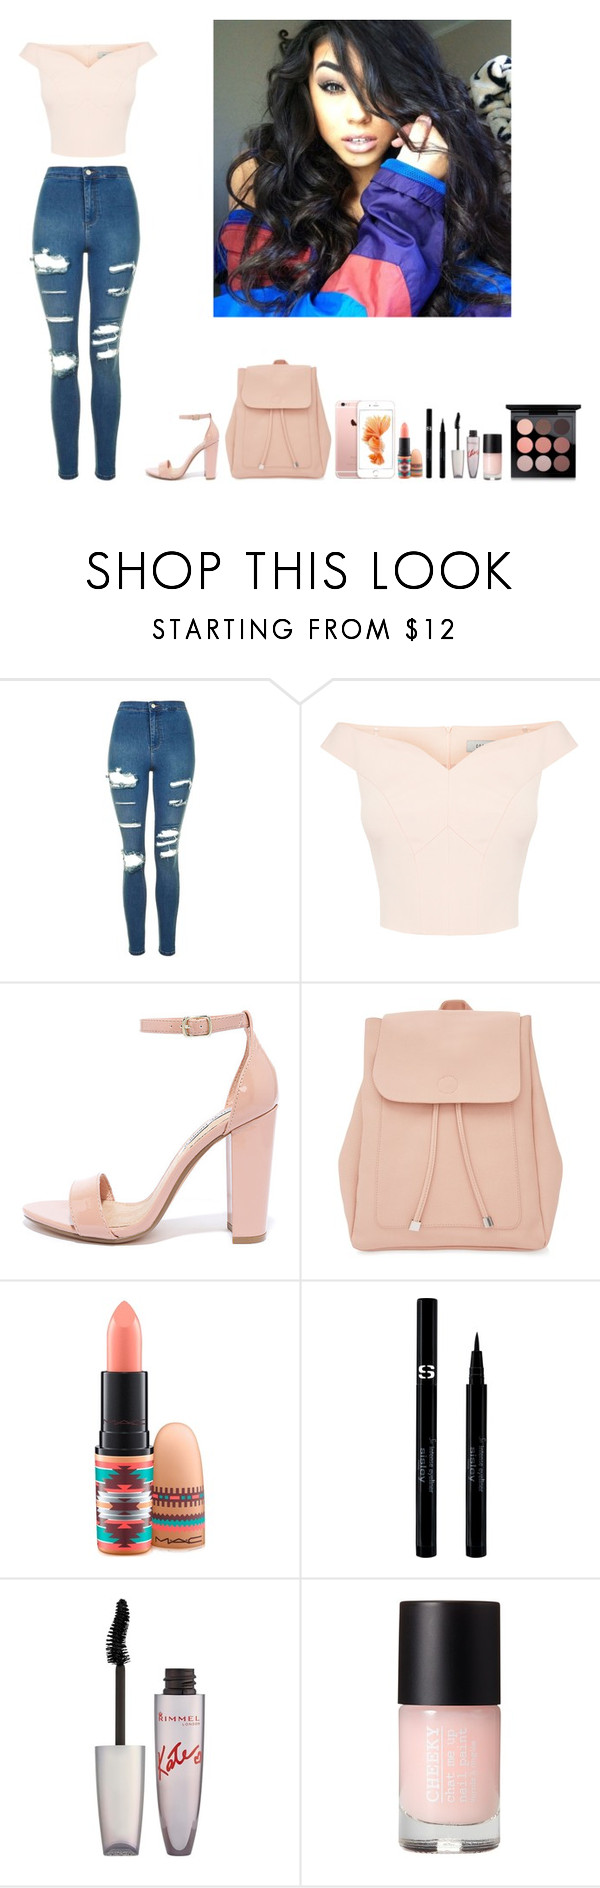 """-Krissy"" by krissyk-15 on Polyvore featuring Topshop, Steve Madden, New Look, MAC Cosmetics, Sisley and Rimmel"